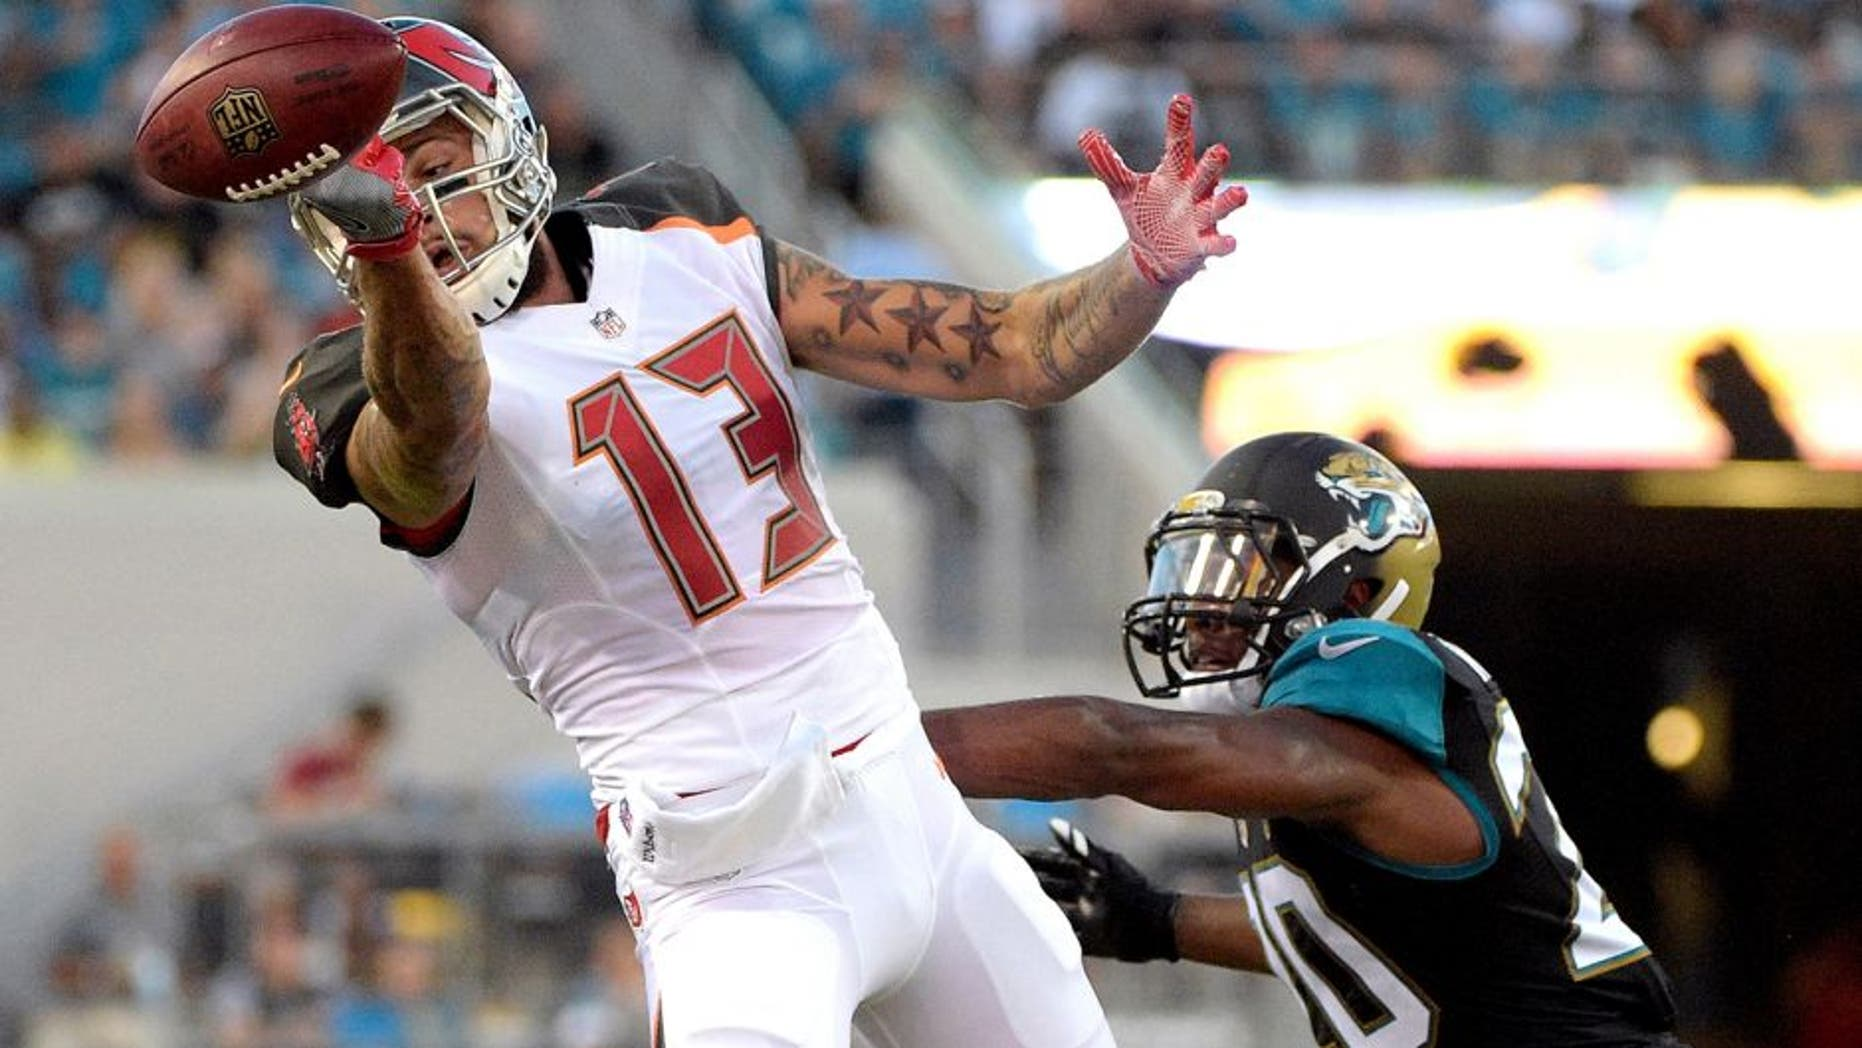 Tampa Bay Buccaneers wide receiver Mike Evans (13) cannot make a reception while defended by Jacksonville Jaguars cornerback Jalen Ramsey (20) during the first half of an NFL preseason football game in Jacksonville, Fla., Saturday, Aug. 20, 2016. (AP Photo/Phelan M. Ebenhack)